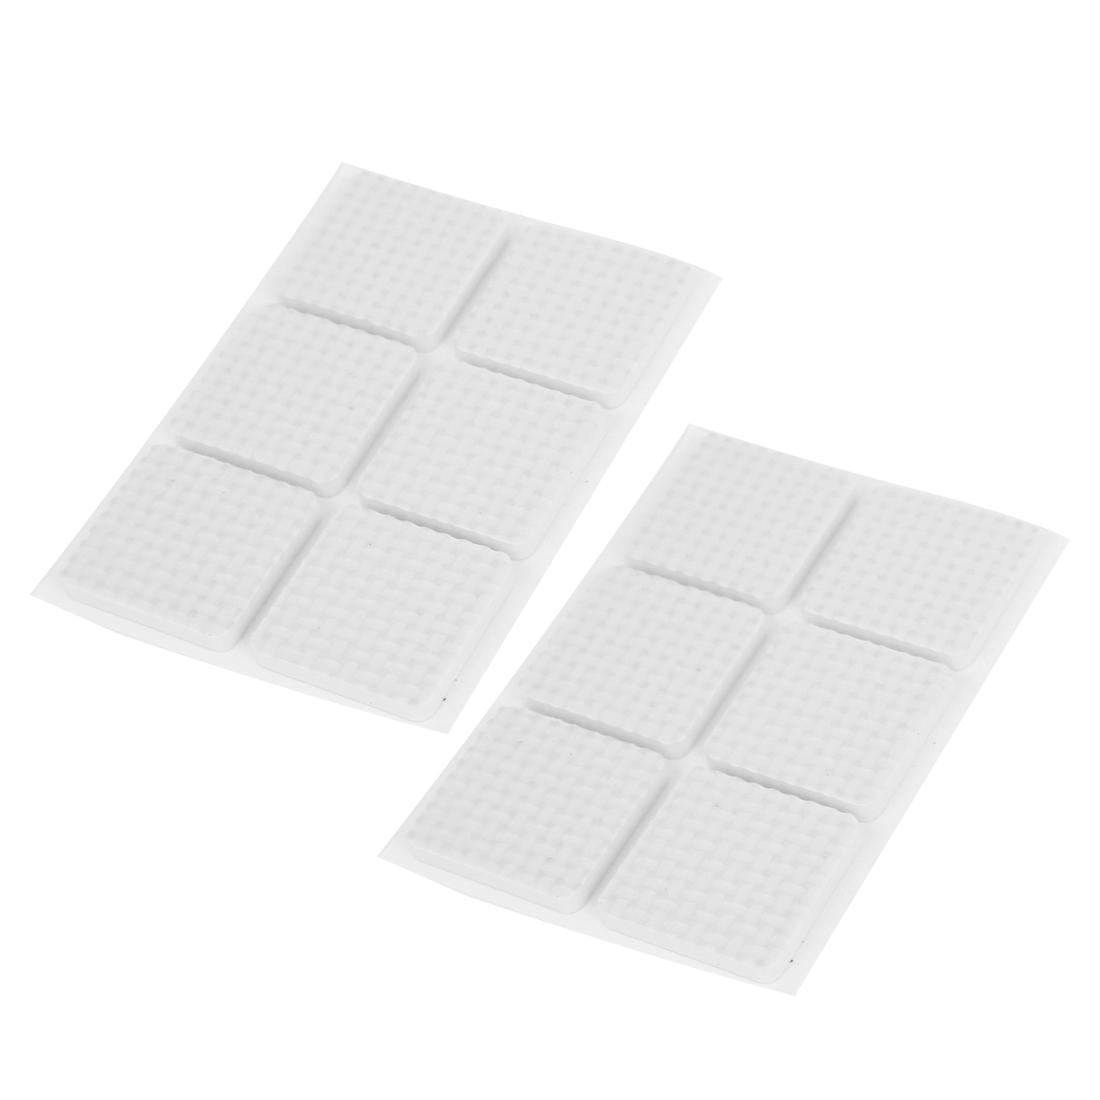 12pcs Anti-Skid Furniture Protection Pads Self Adhesive Floor Scratch Protector